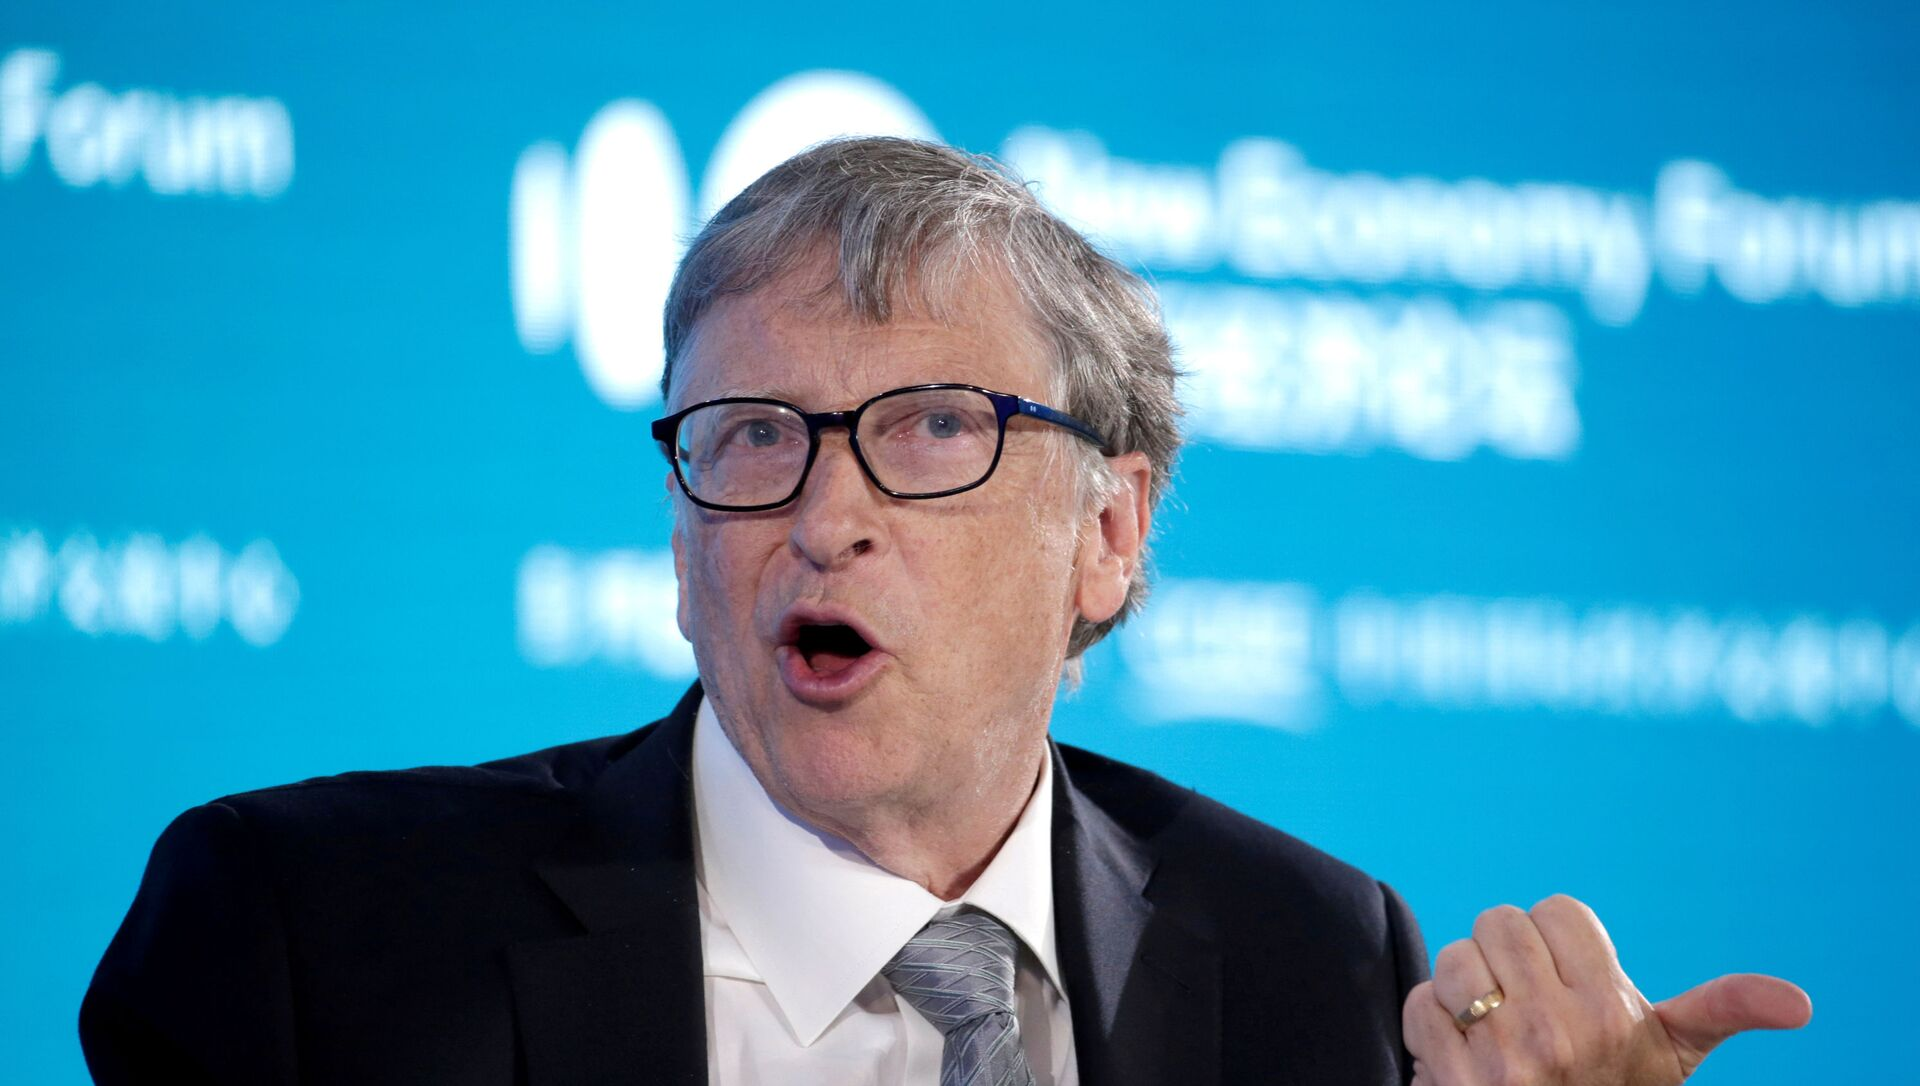 Bill Gates, Co-Chair of Bill & Melinda Gates Foundation, attends a conversation at the 2019 New Economy Forum in Beijing, China November 21, 2019 - Sputnik Italia, 1920, 05.03.2021